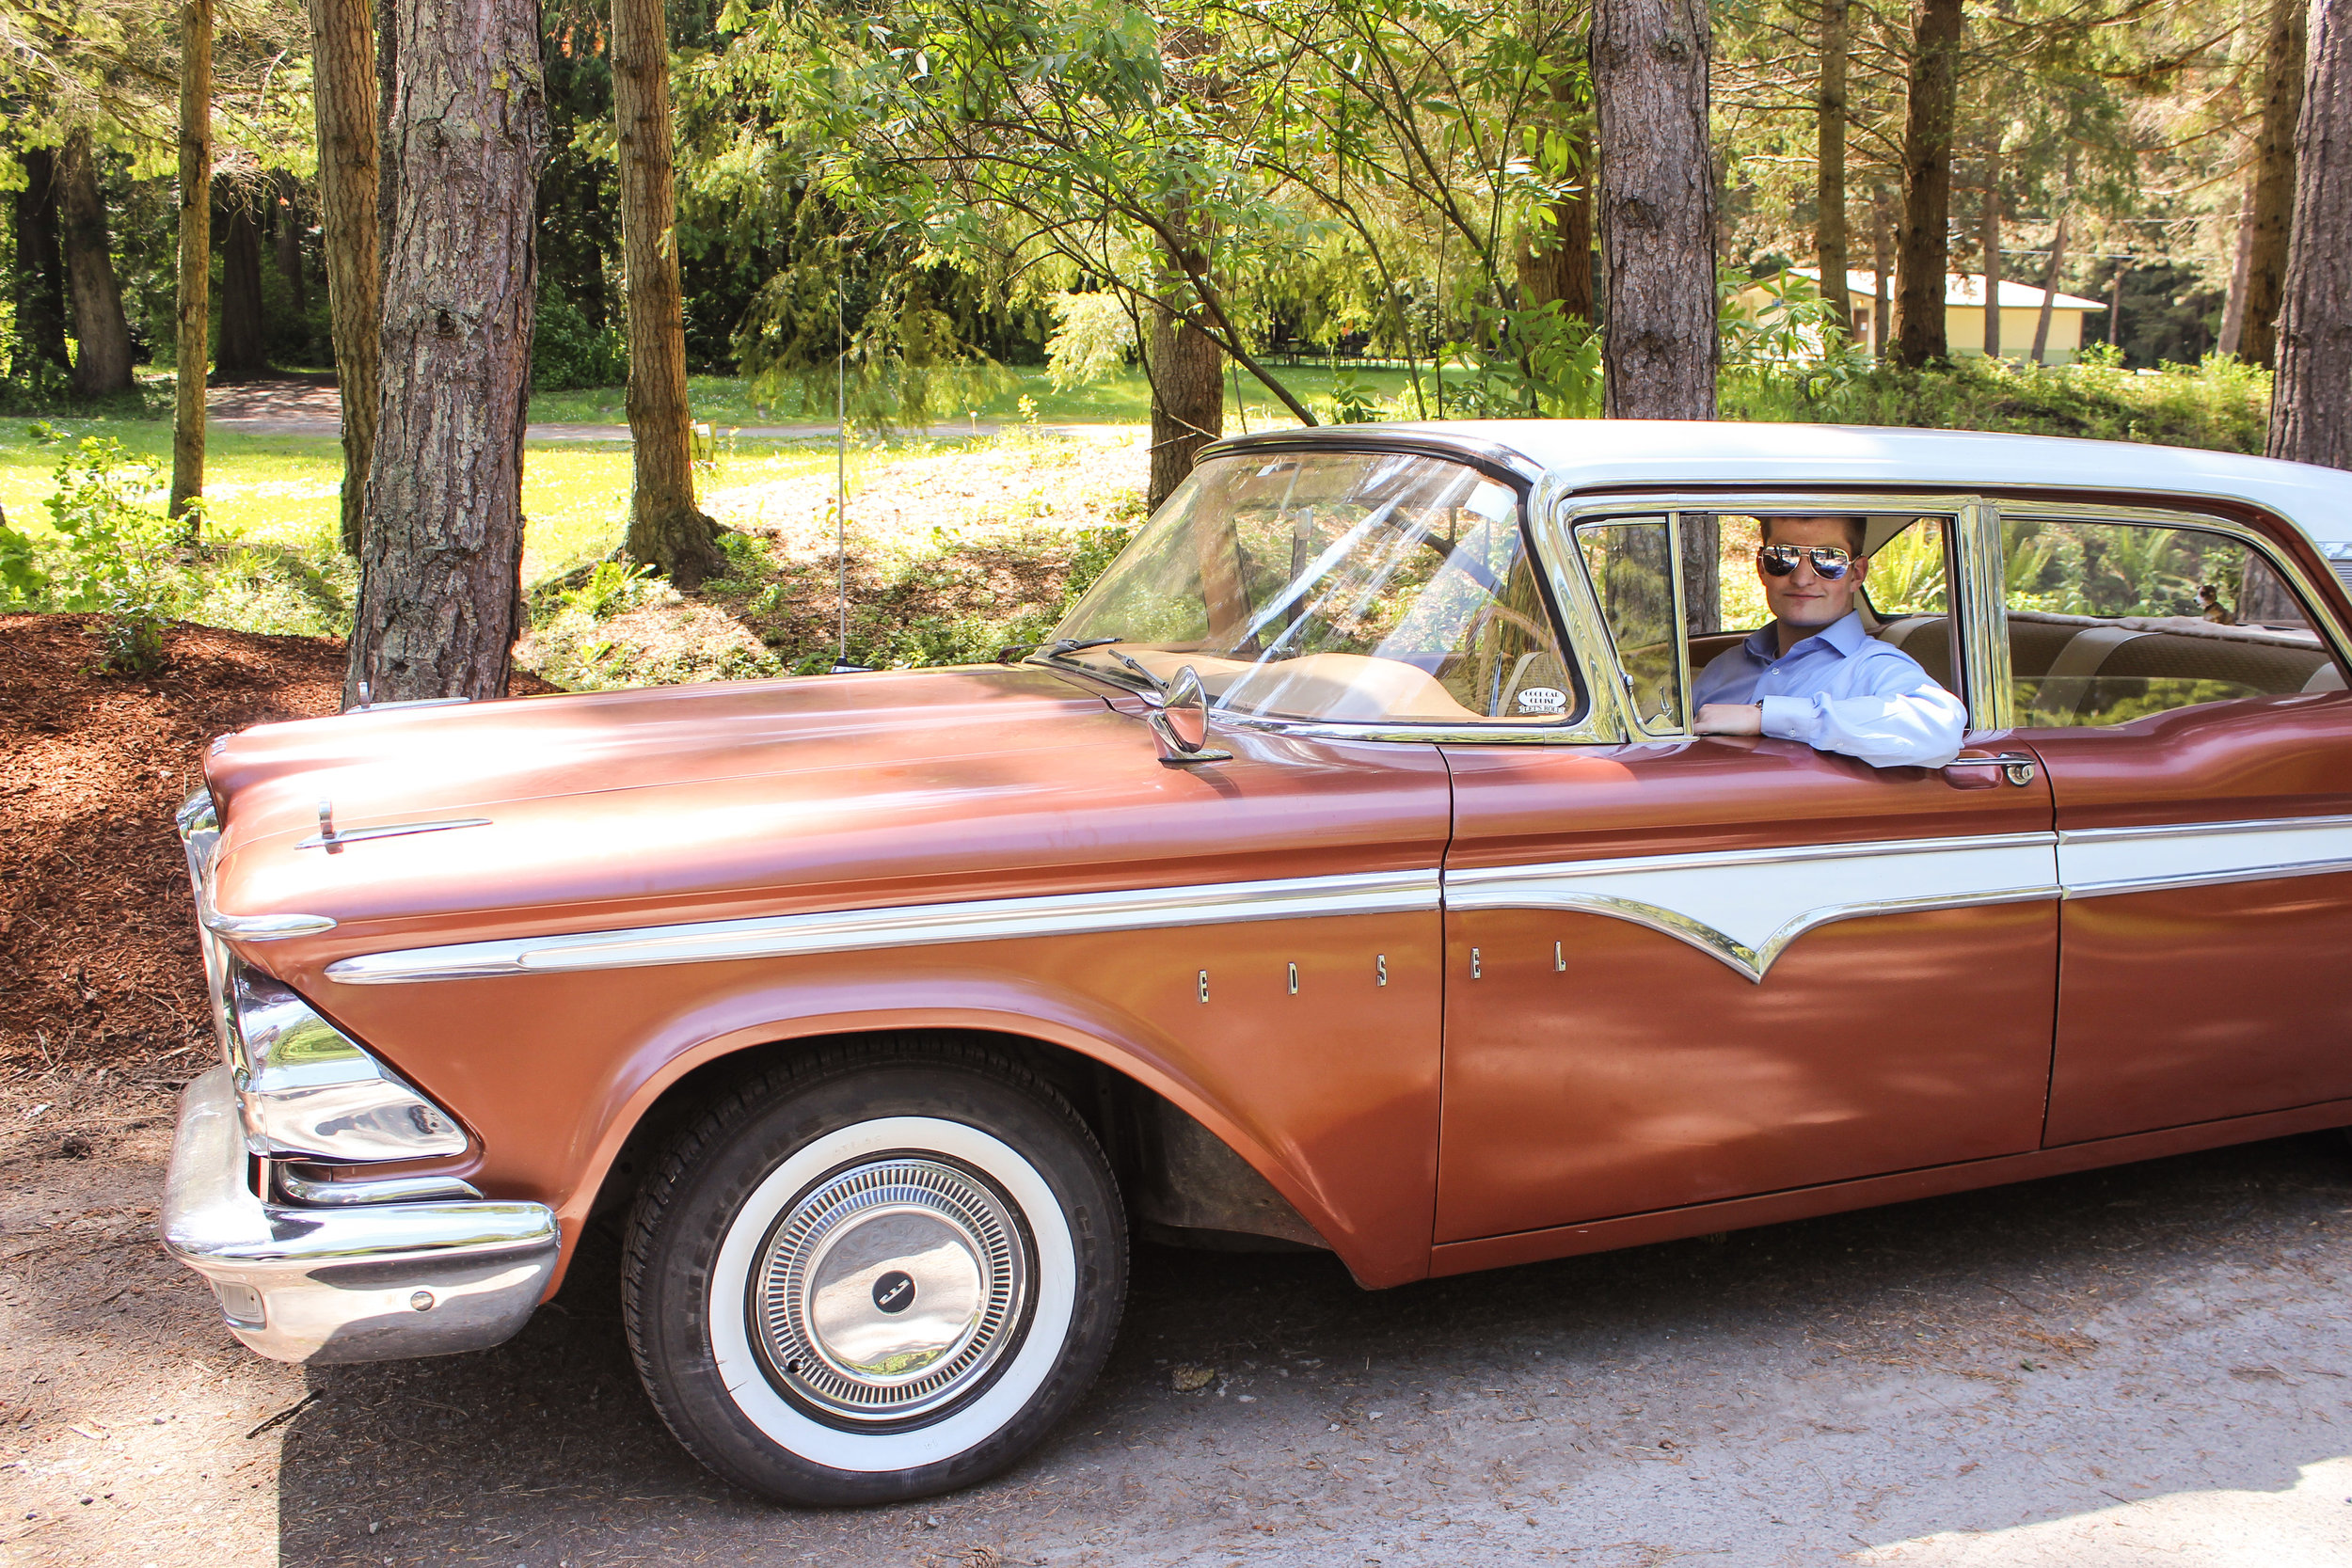 Ian in a 1959 Edsel Ranger 4-door sedan